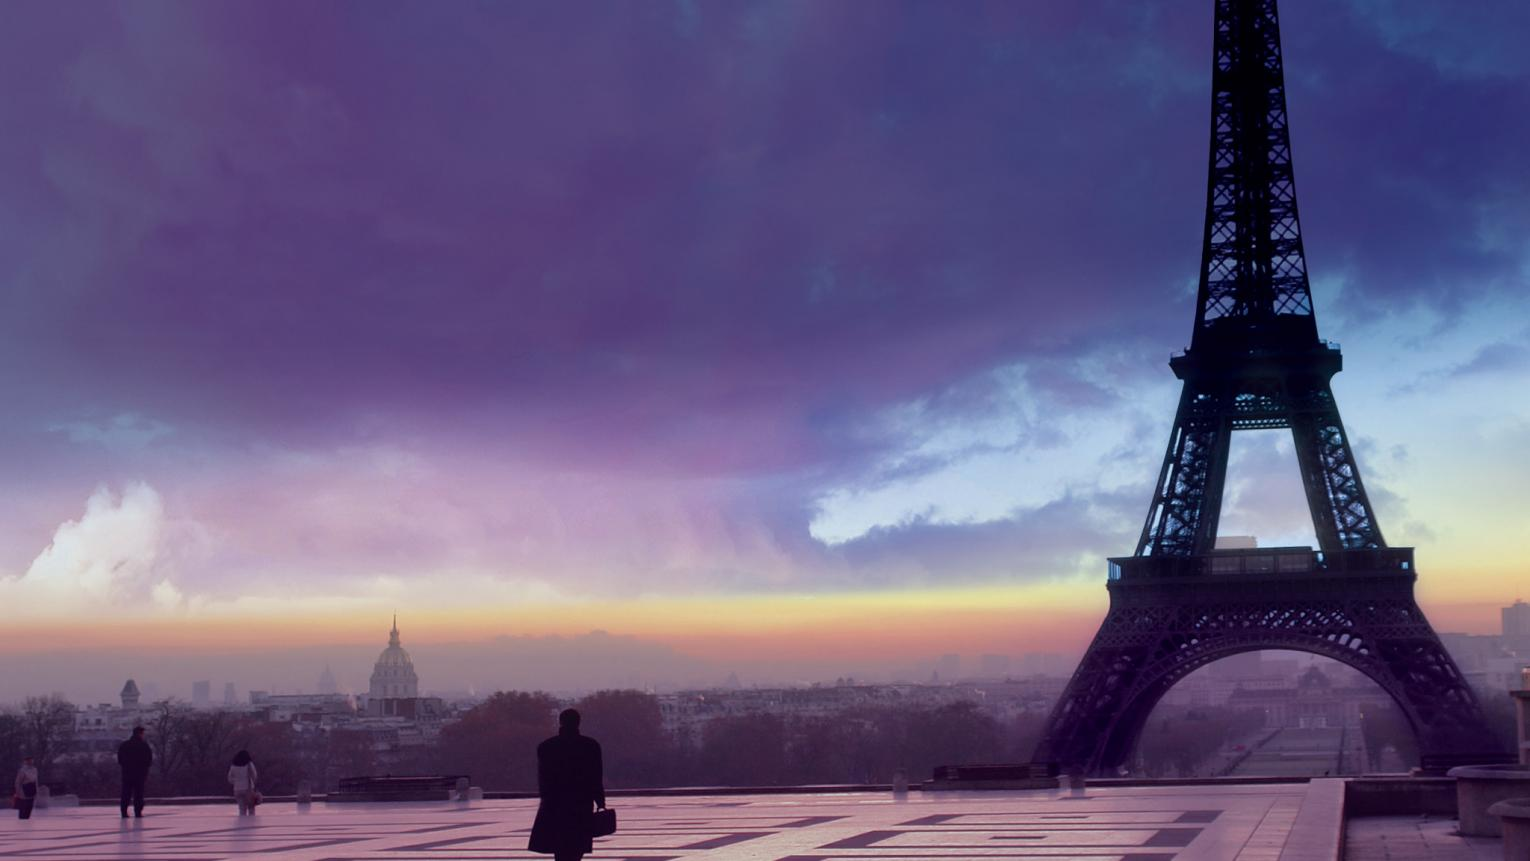 Dream of the enchanted landscape of France, rich with purple hues and the warm scent of Lavender, and you can't help feeling a little romantic.